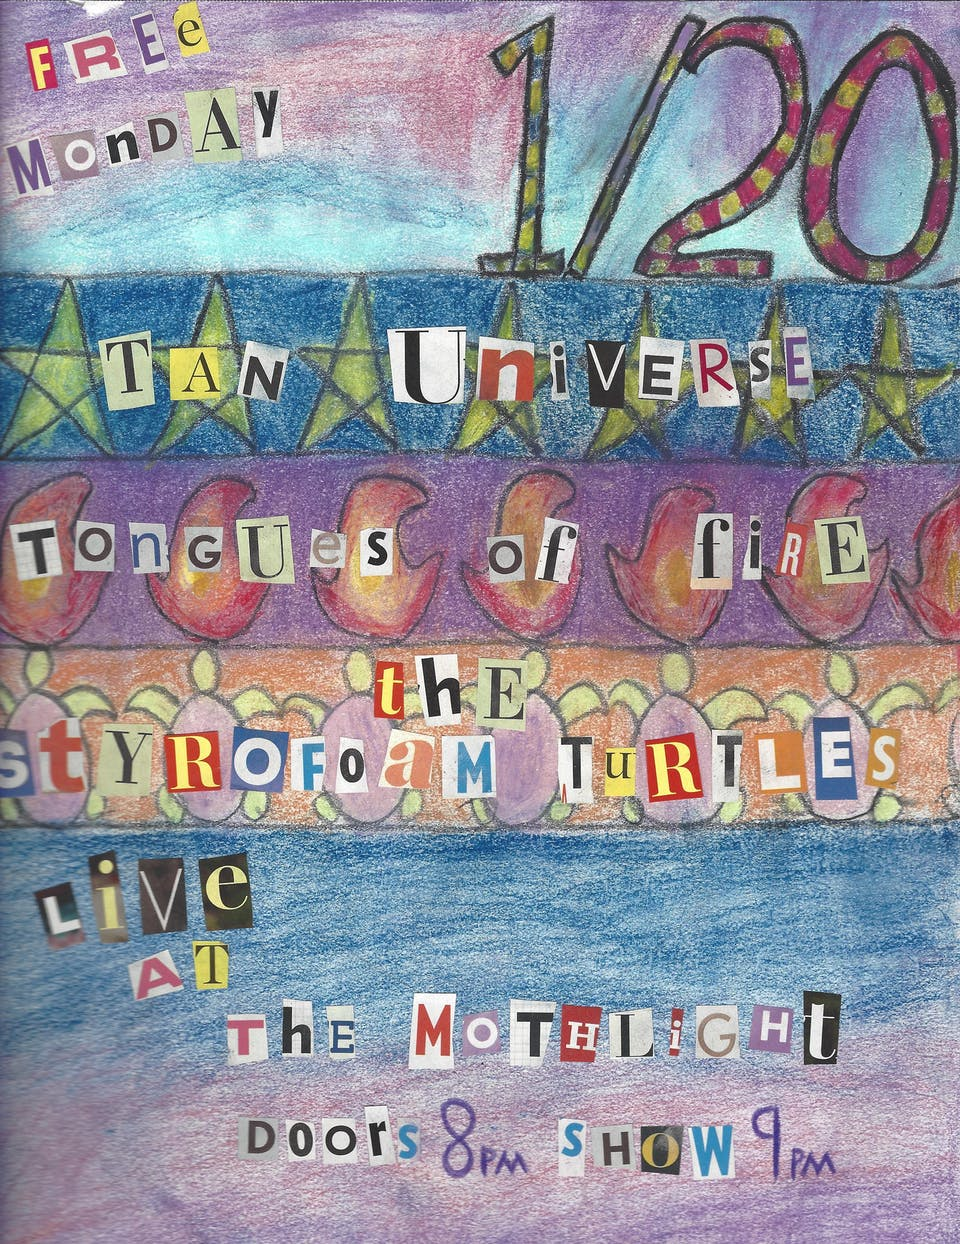 Styrofoam Turtles ~ Tan Universe ~ Tongues of Fire